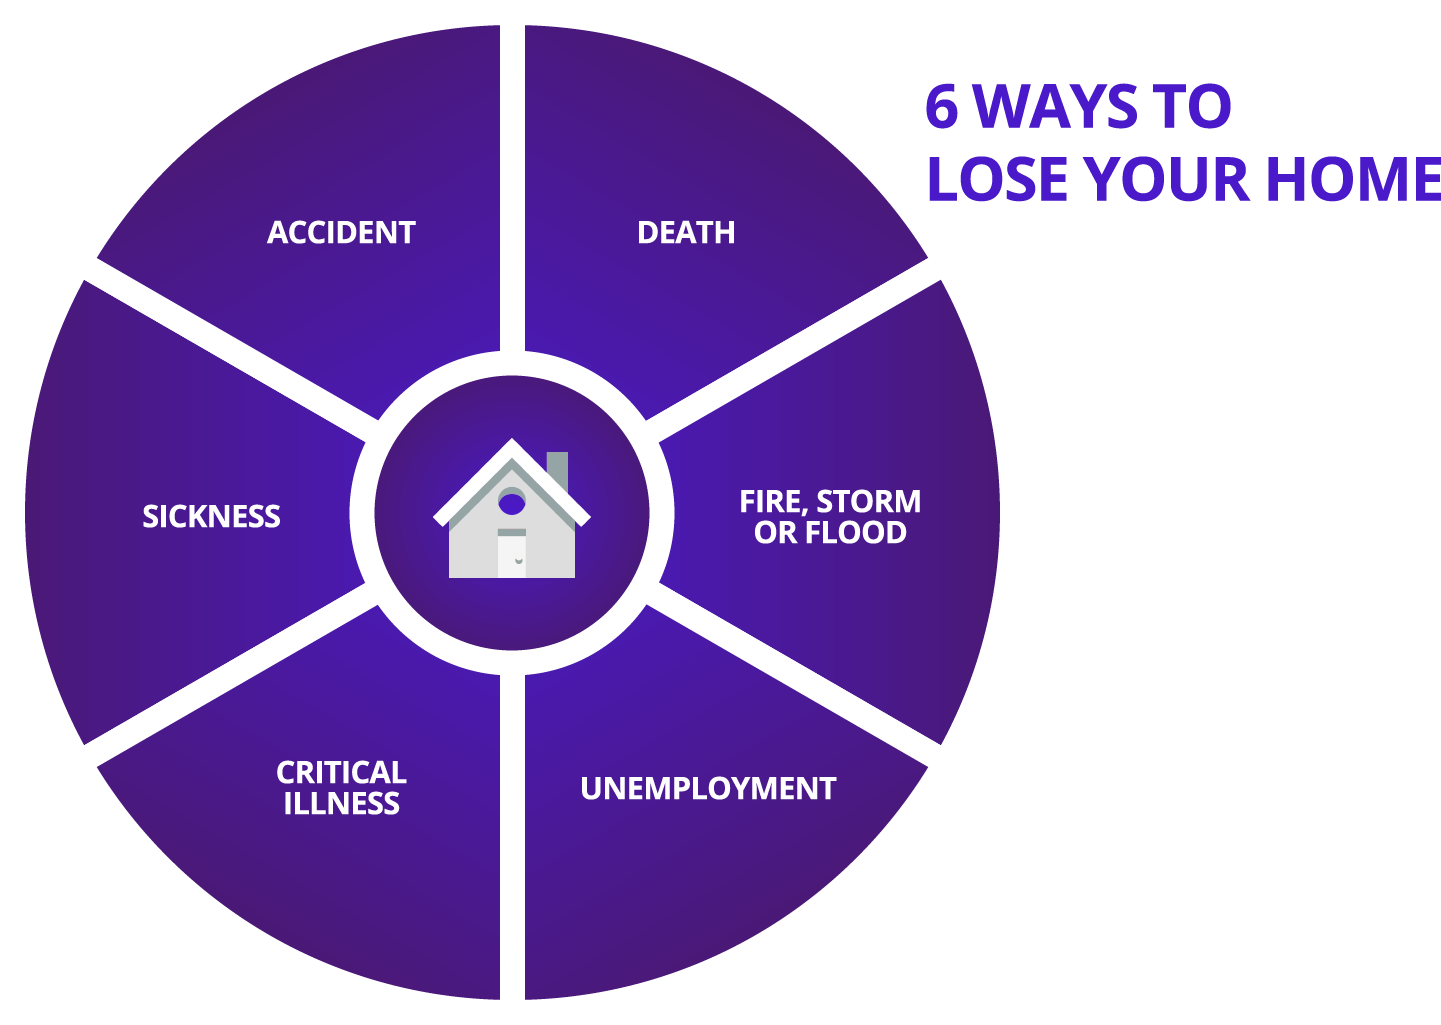 6 ways to lose your home